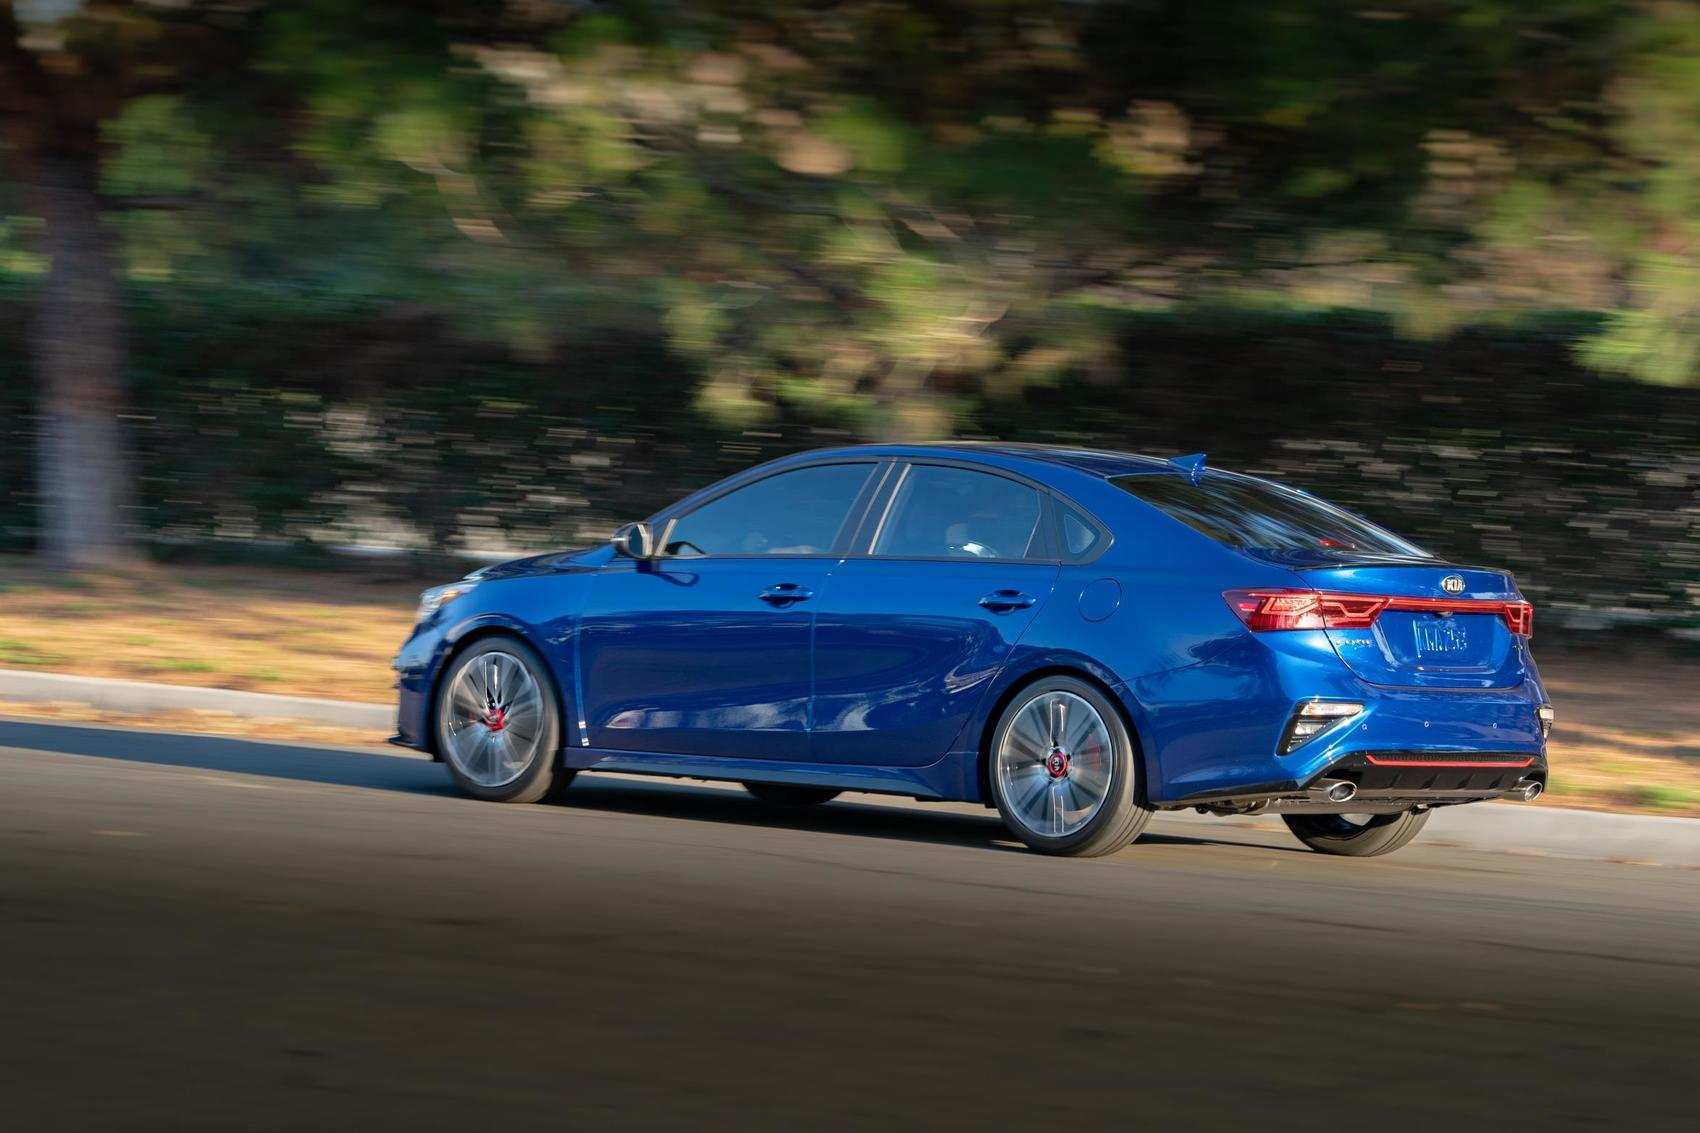 93 Great Kia Forte Gt 2020 Price and Review by Kia Forte Gt 2020